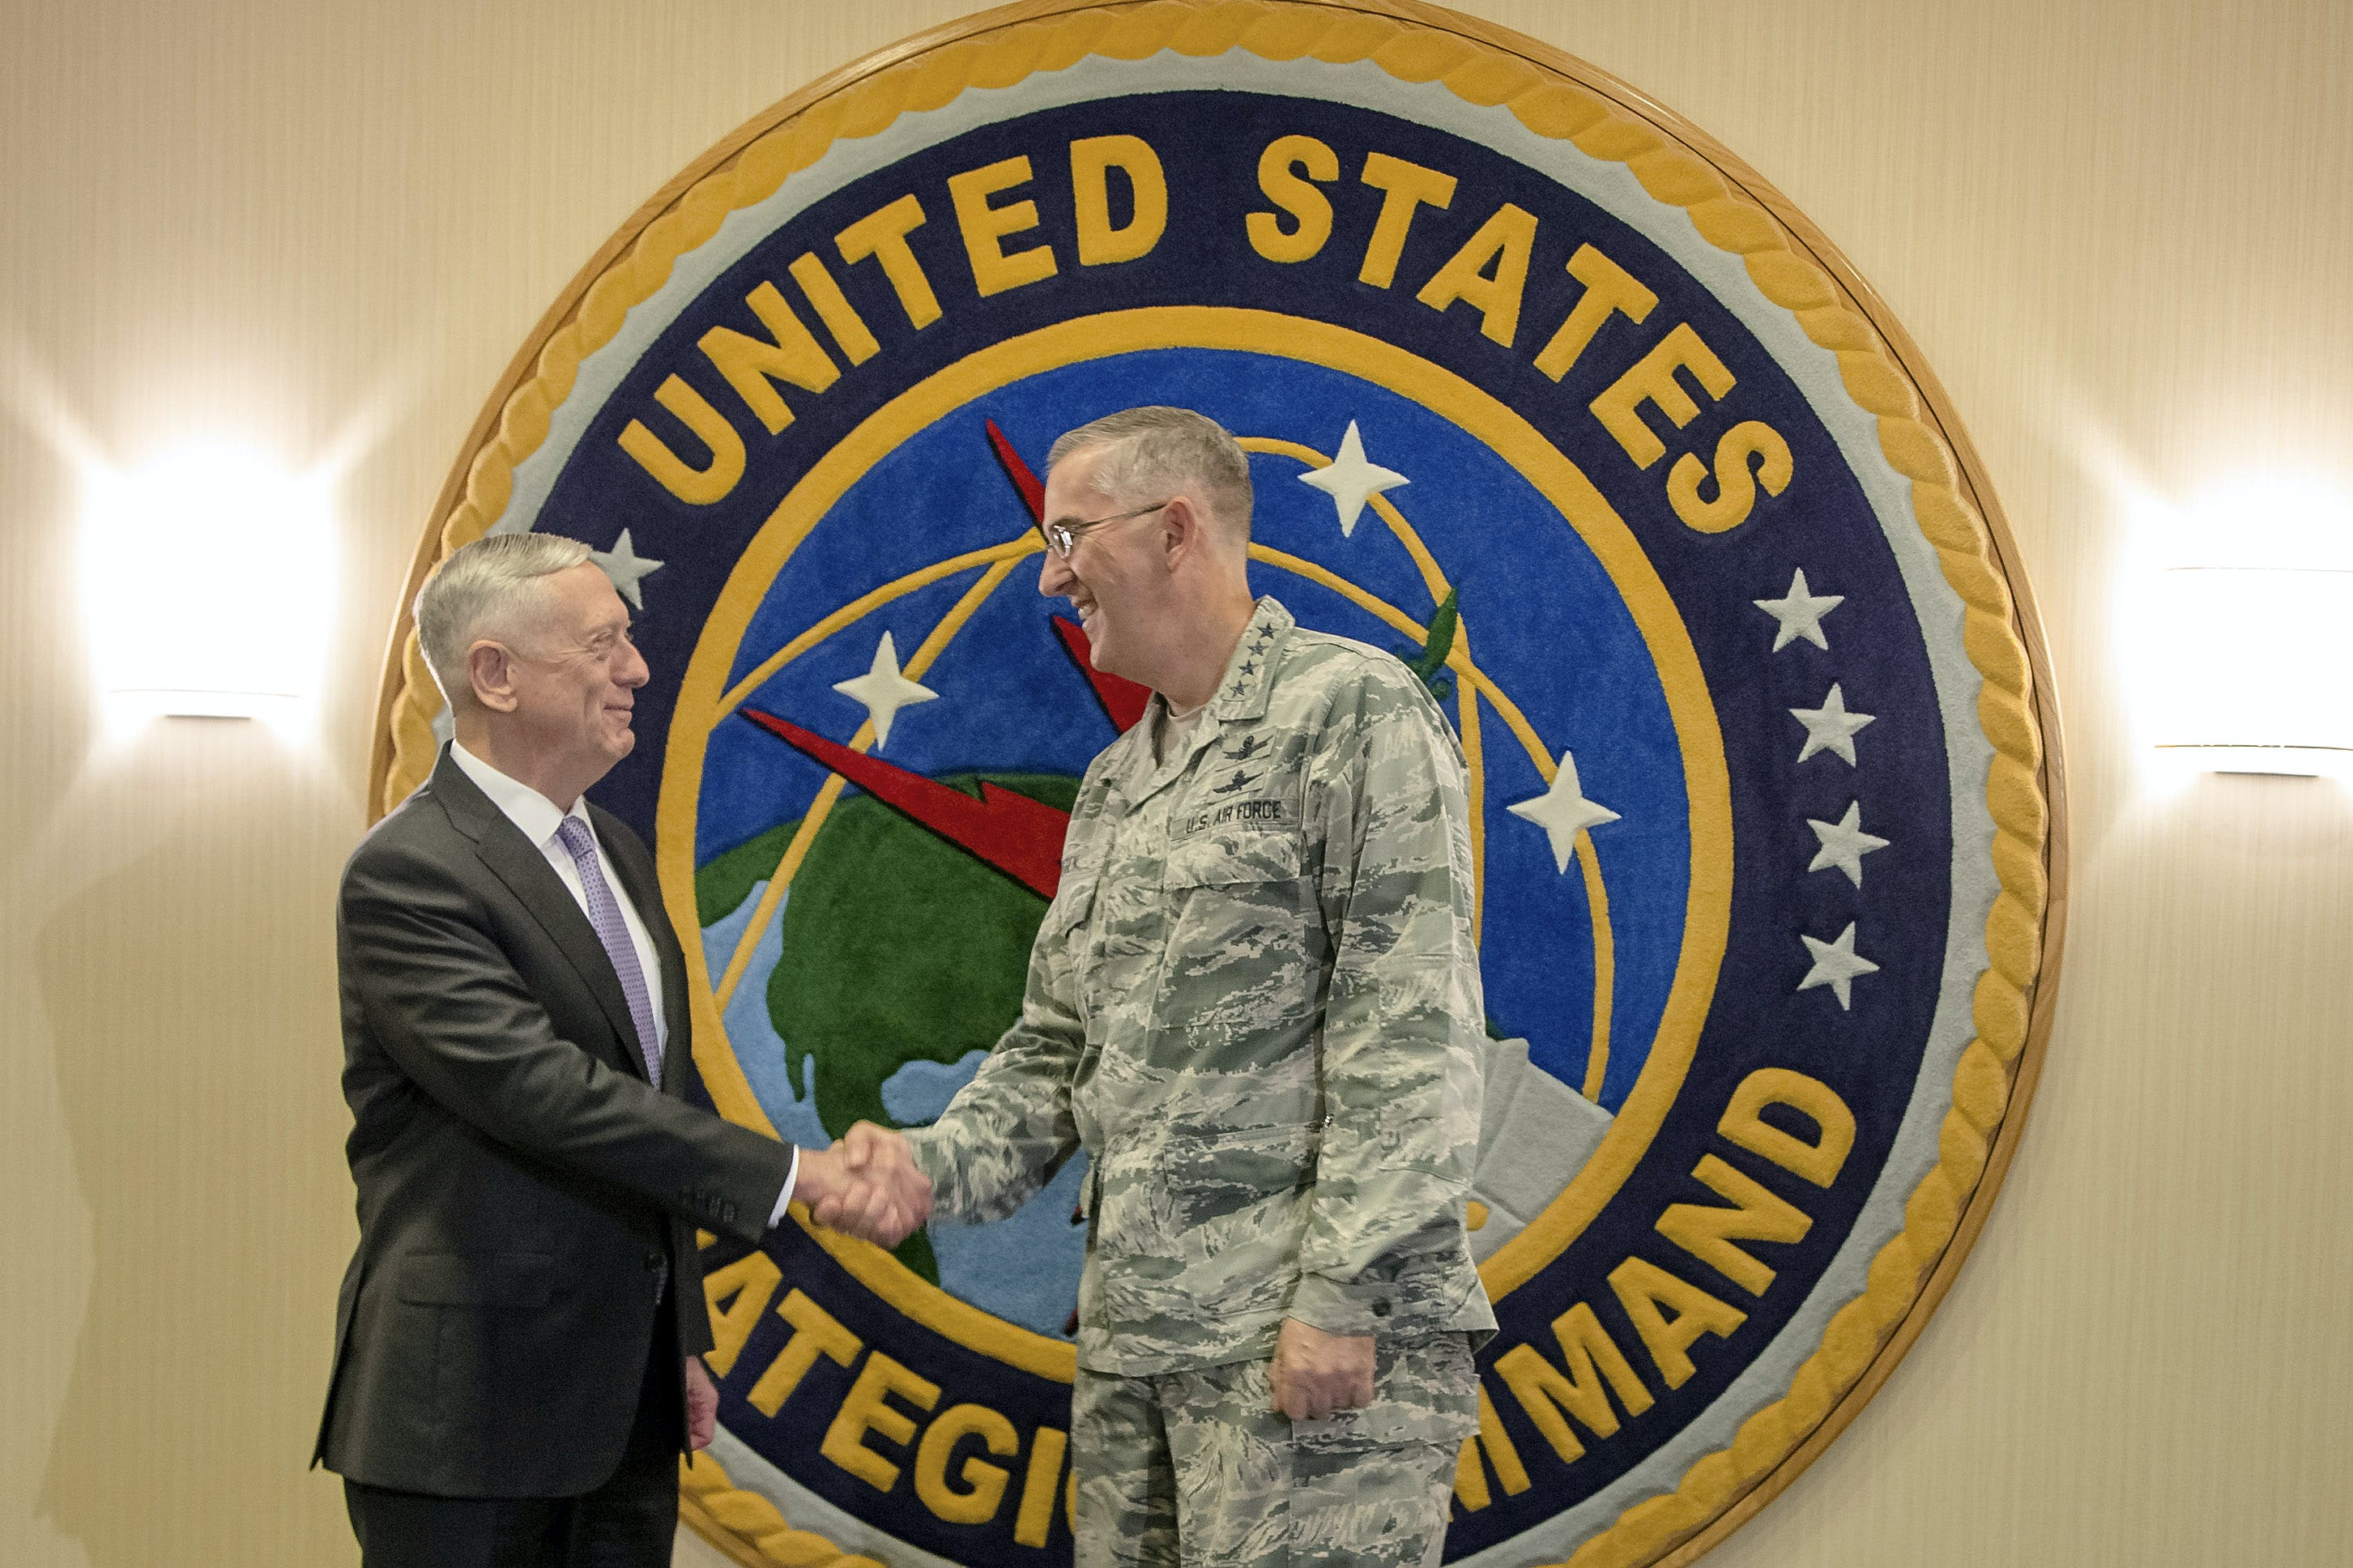 """Secretary of Defense Jim Mattis, left, poses for a handshake at Offutt Air Force Base with Gen. John E. Hyten, the head of Strategic Command, in Bellevue, Neb., Thursday, Sept. 14, 2017. Mattis will be receiving classified briefings at Strategic Command, which will help him in his """"nuclear posture review,"""" a top-to-bottom reassessment of U.S. nuclear weapons policy. (AP Photo/Nati Harnik)"""